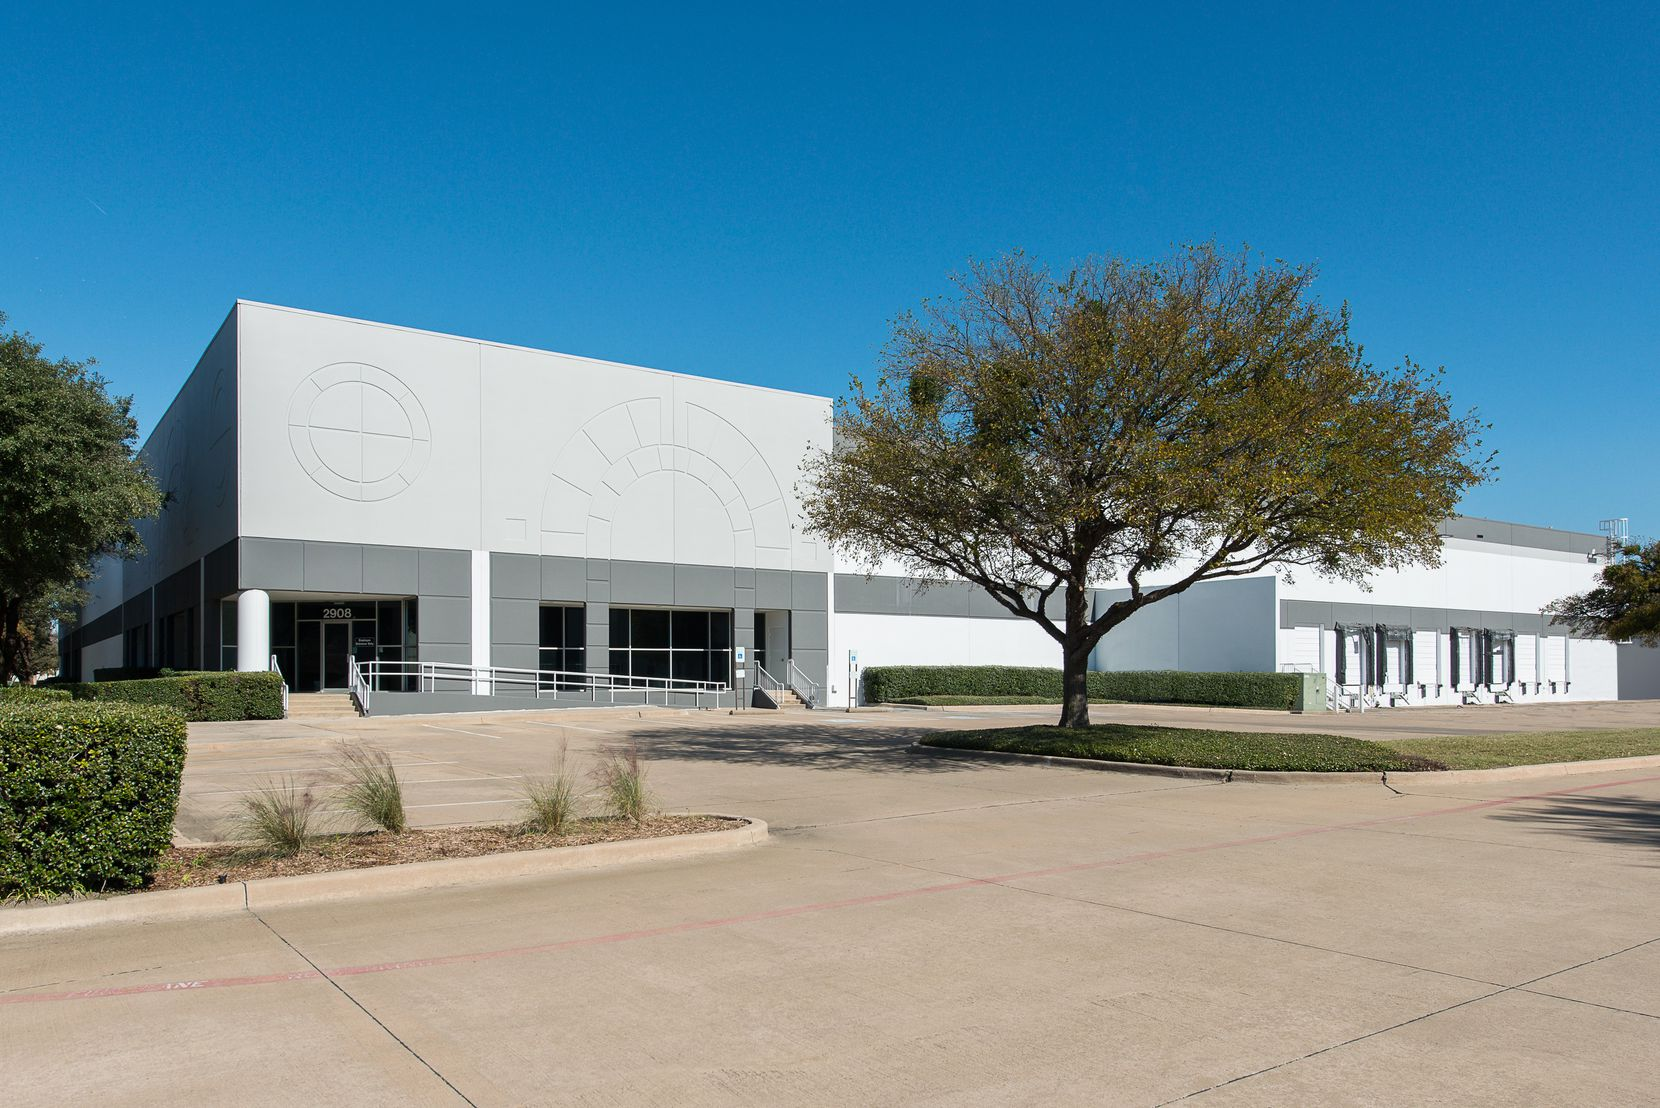 NAPCO Bag & Film has leased industrial space at 2908 Commodore Drive in Carrollton